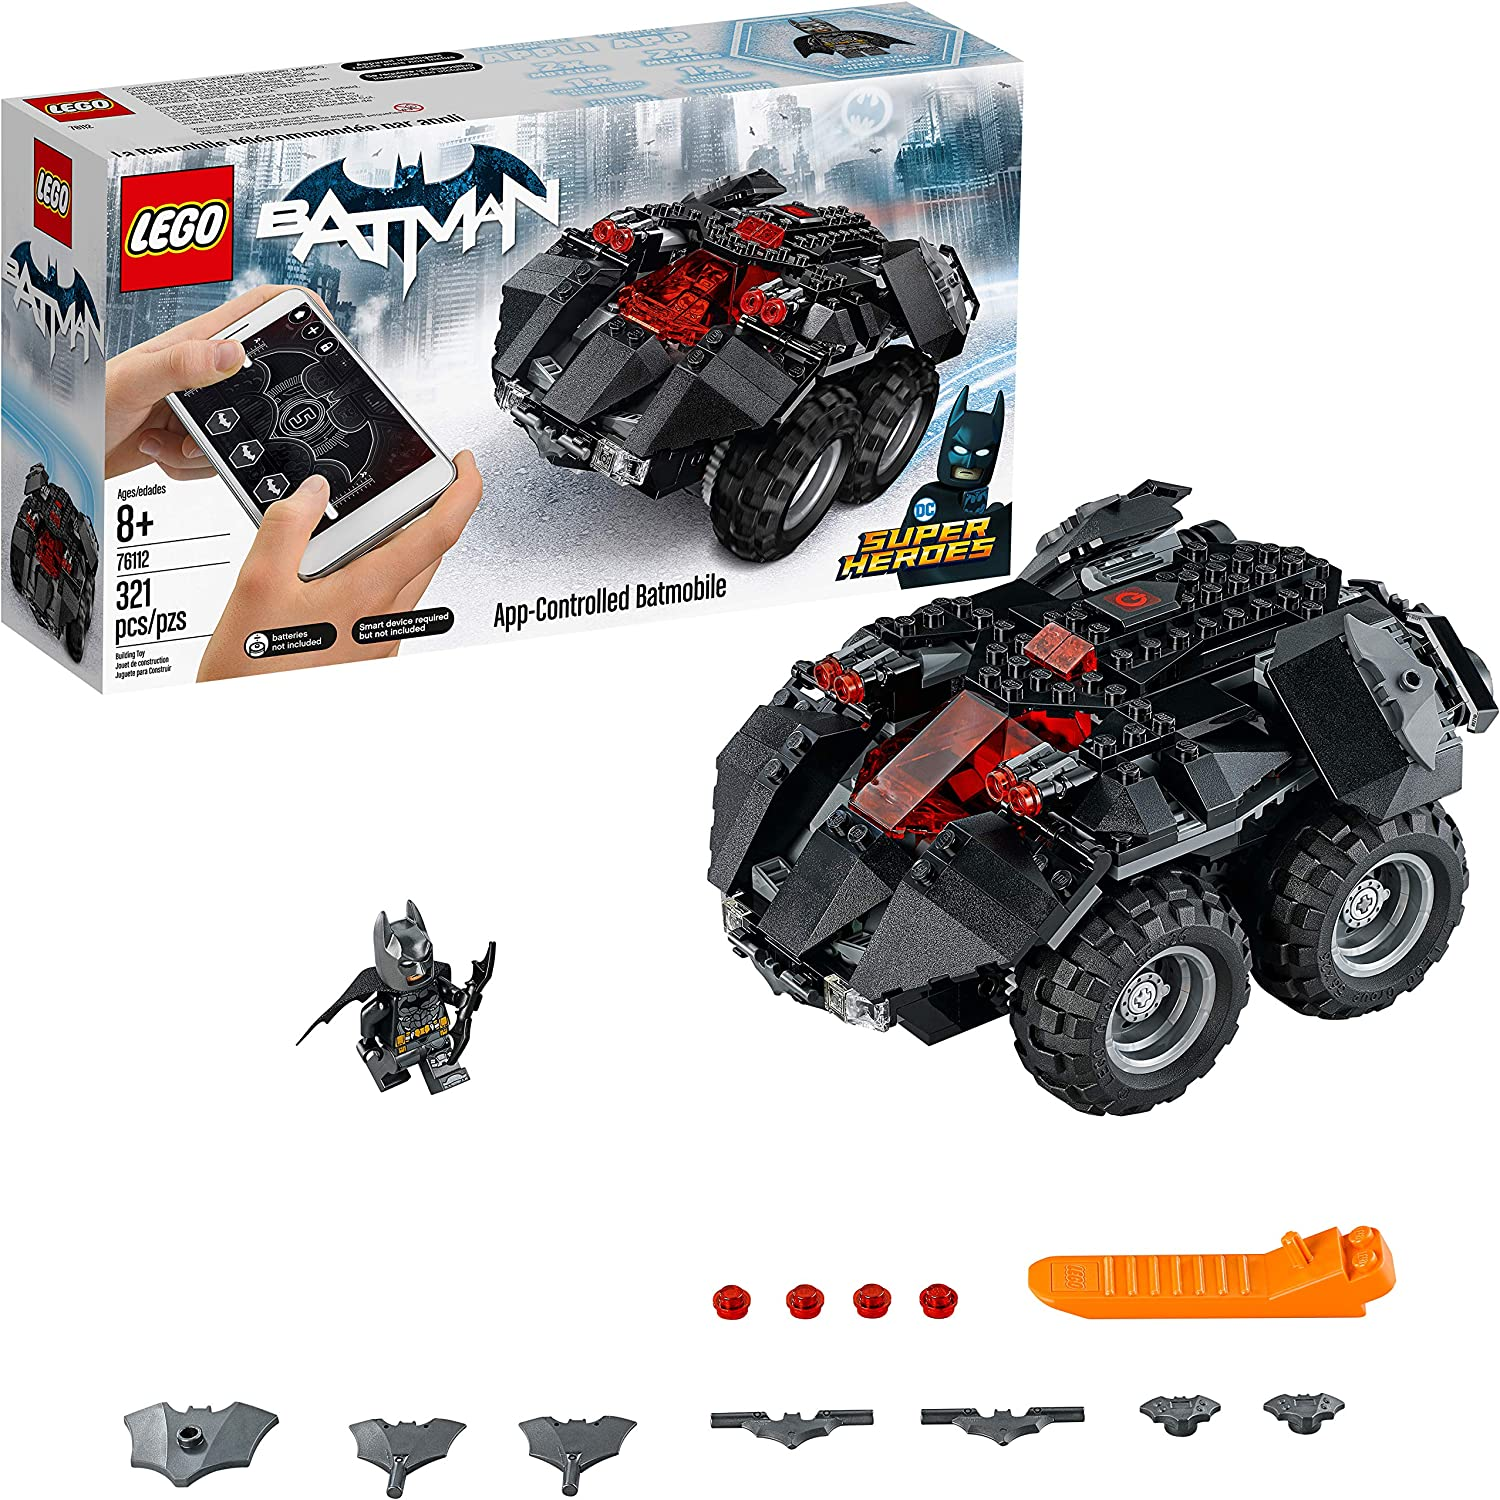 LEGO DC Super Heroes App-controlled Batmobile 76112 Remote Control (rcs) Batman Car, Best-Seller Building Kit and Toy for Boys (321 Piece)